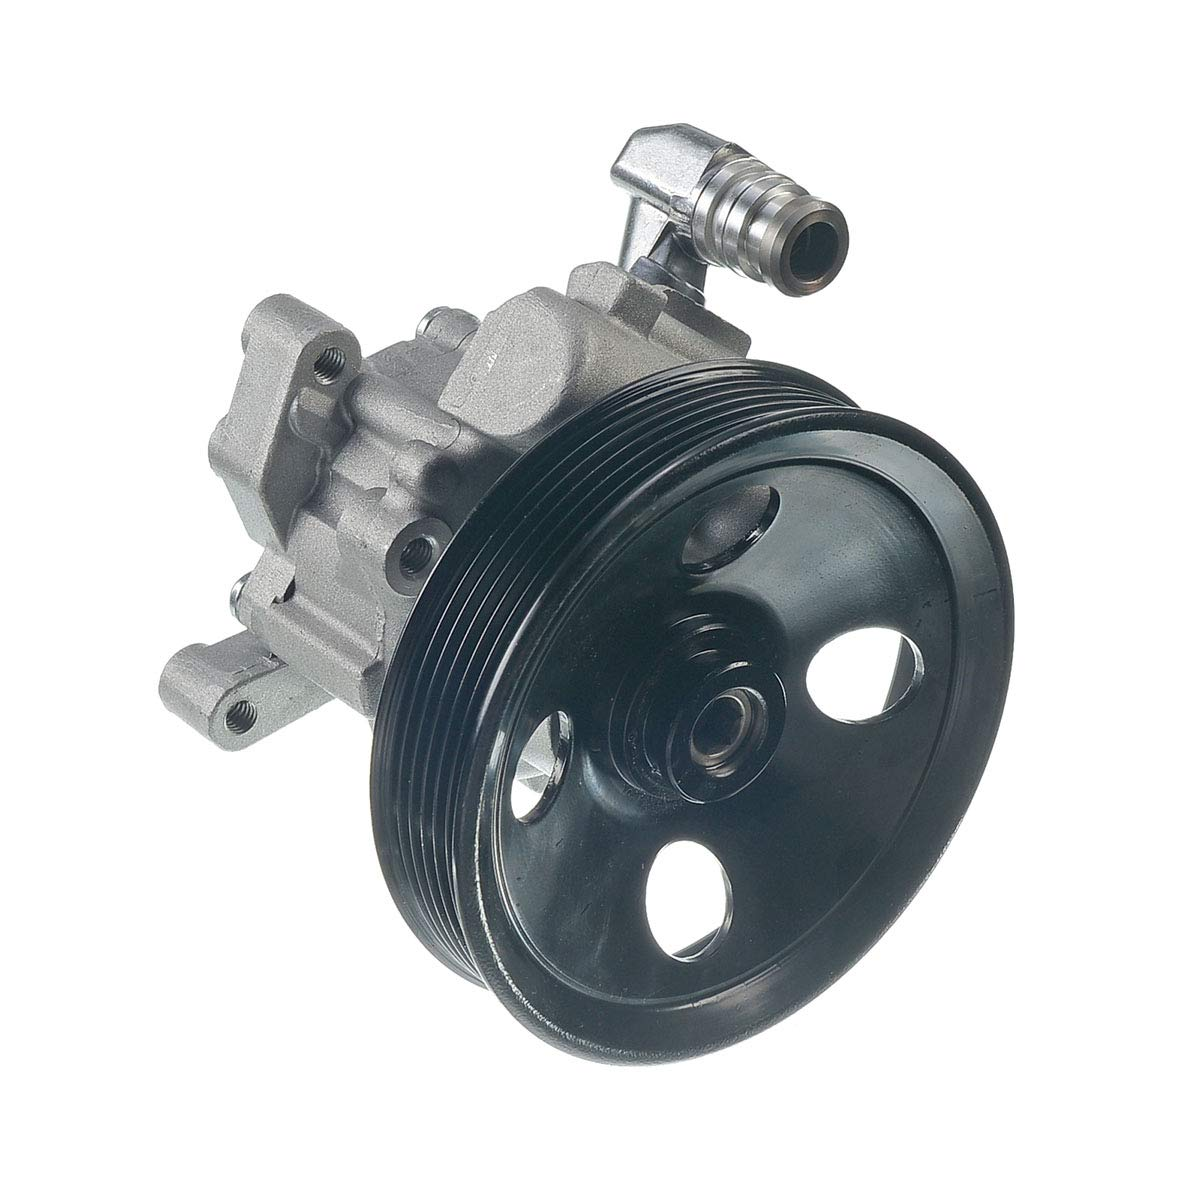 A-Premium Power Steering Pump with Pulley for Mercedes-Benz GL450 GL550 CLS550 ML350 ML550 E350 E550 R350 S550